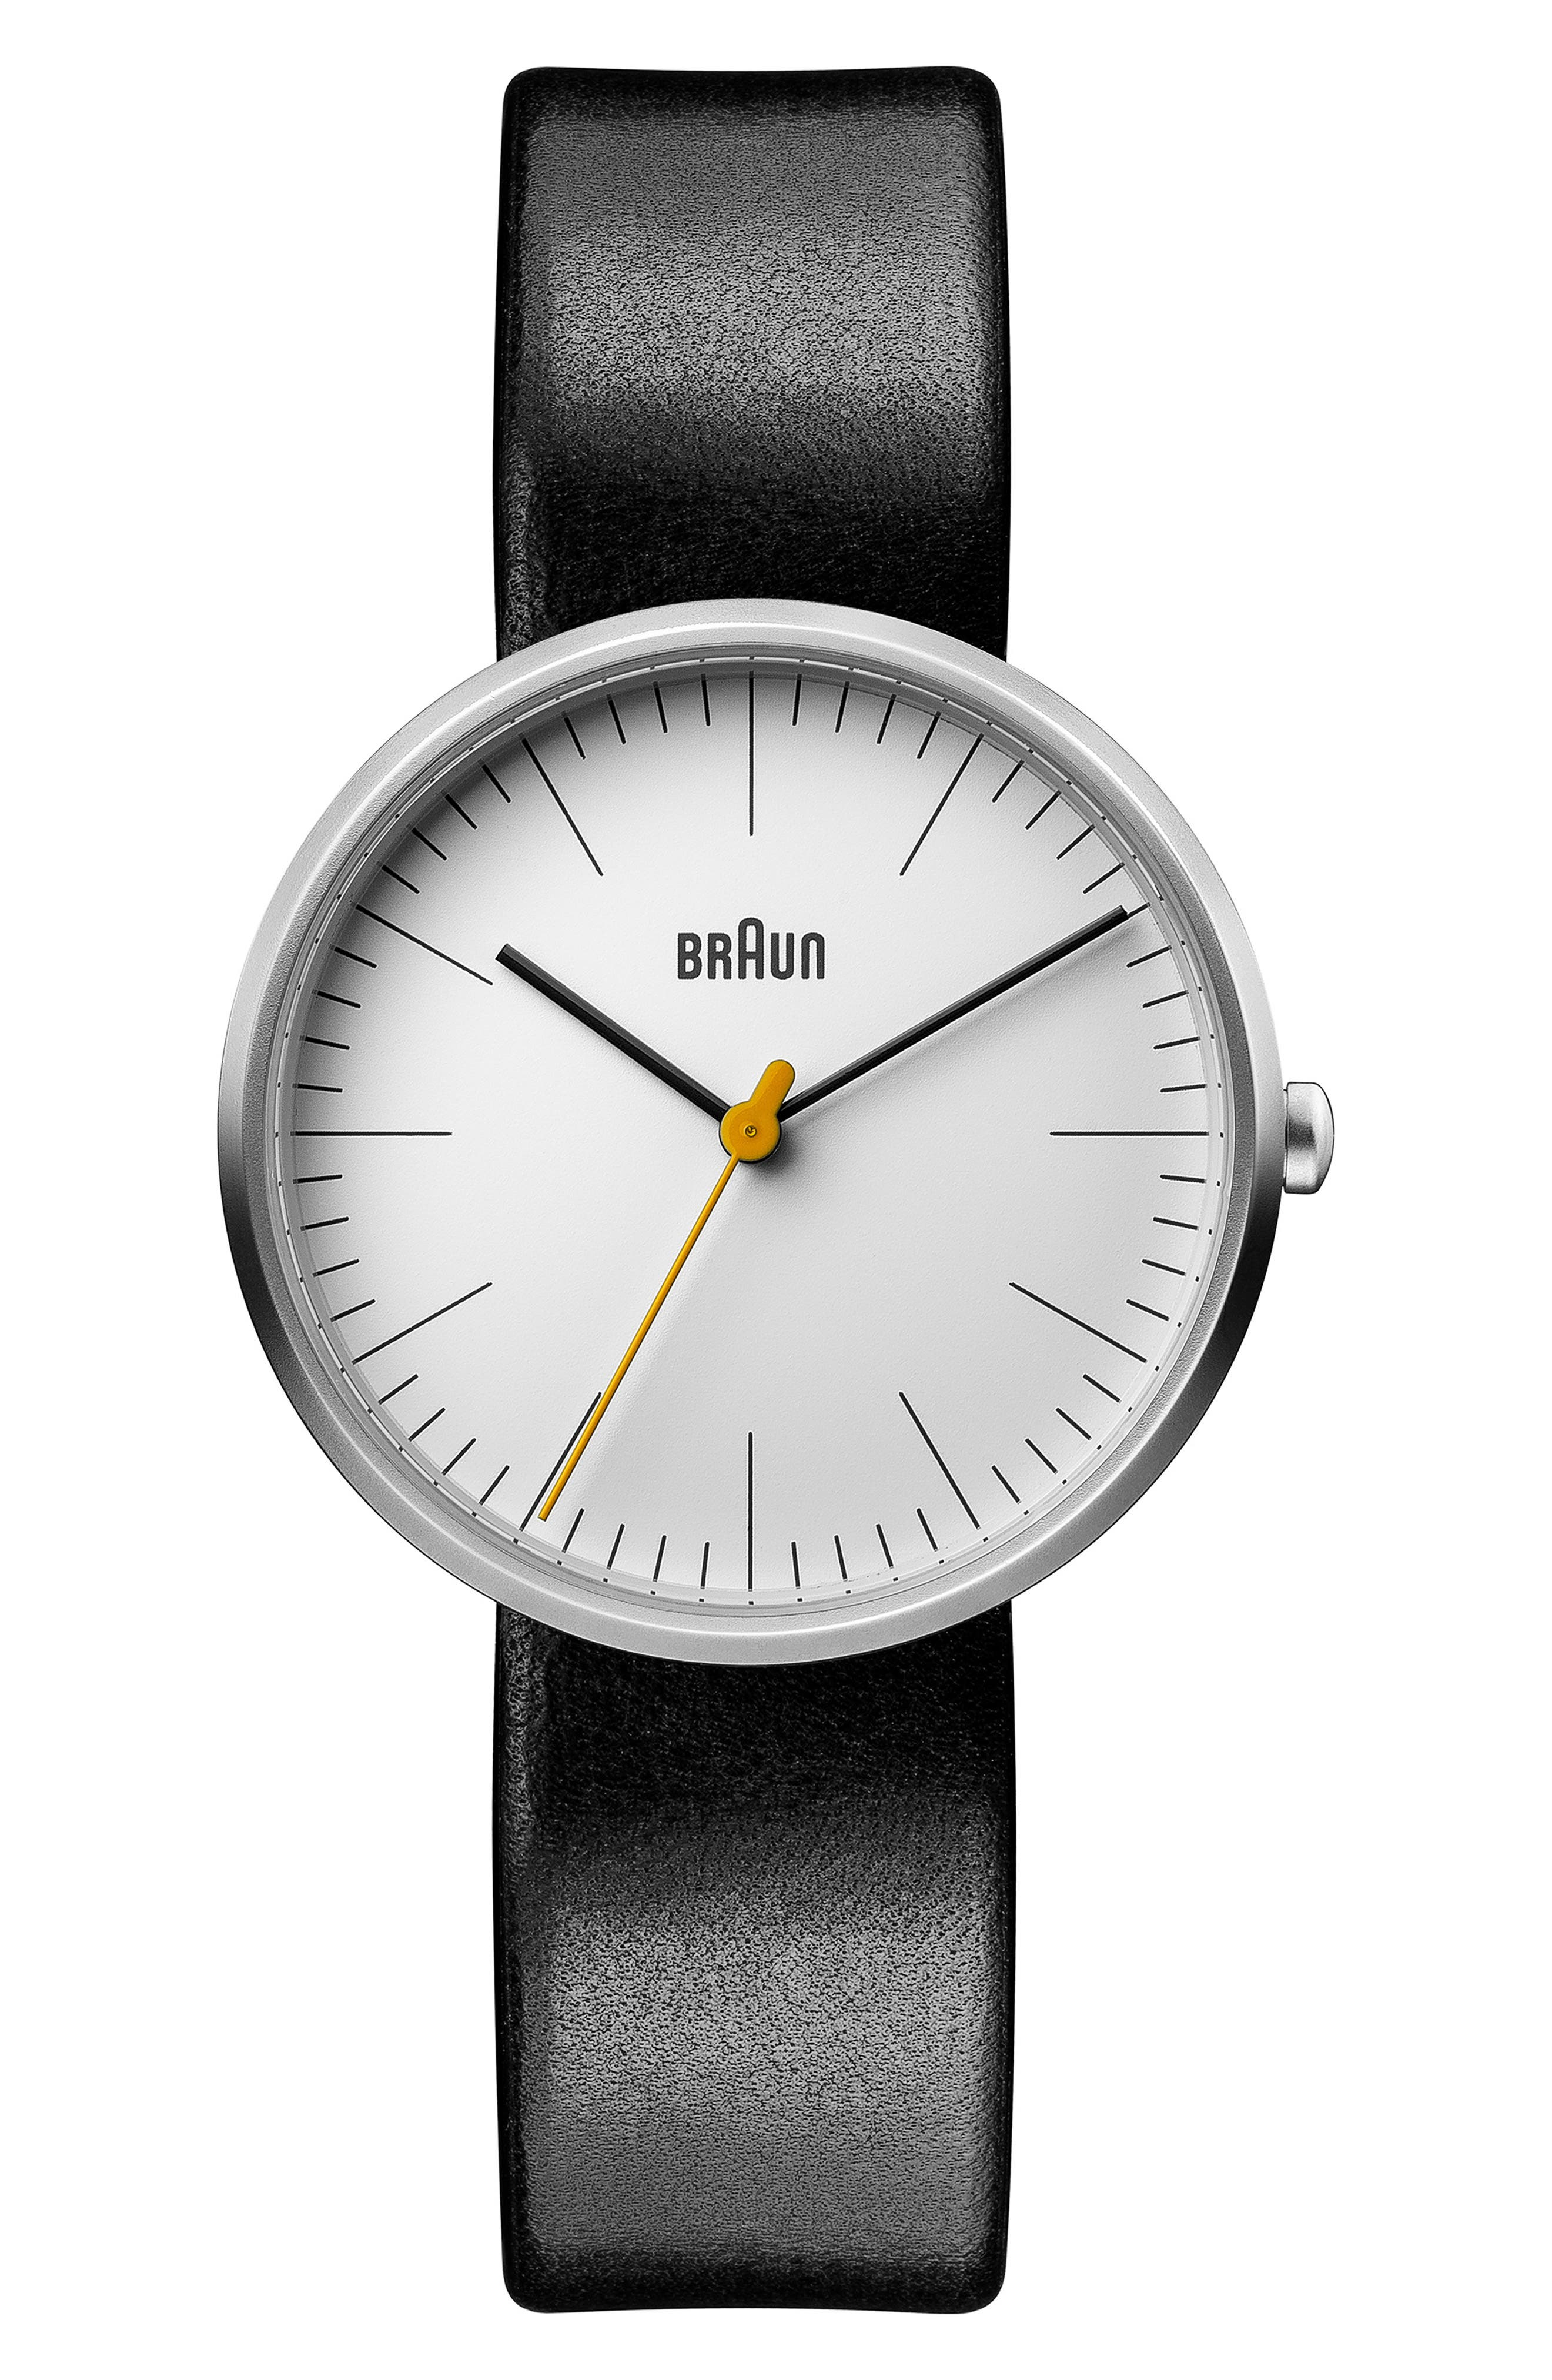 BRAUN Classic Leather Strap Watch, 38Mm in Black/ White/ Silver